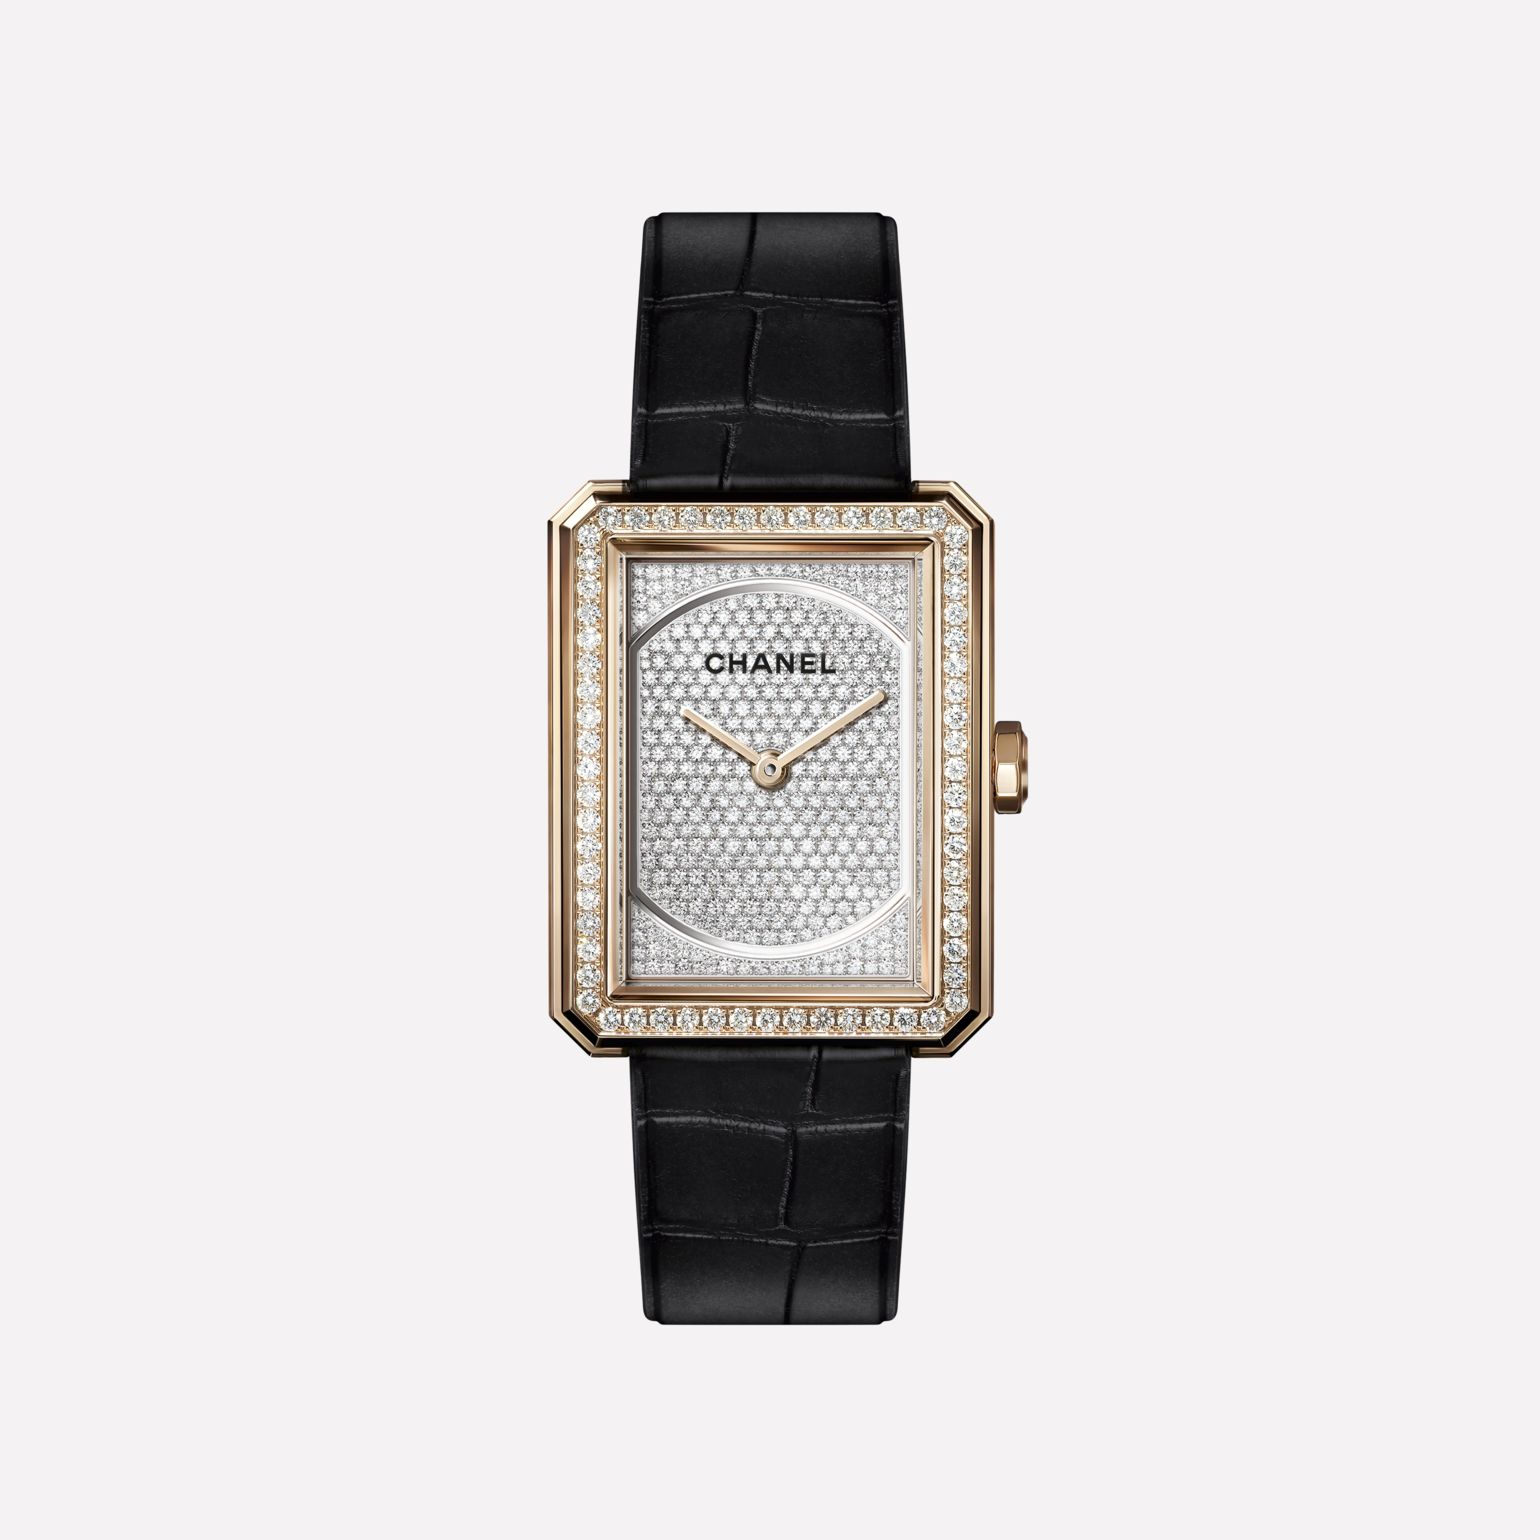 BOY·FRIEND Watch Medium version, BEIGE GOLD and dial set with diamonds,shiny  alligator strap